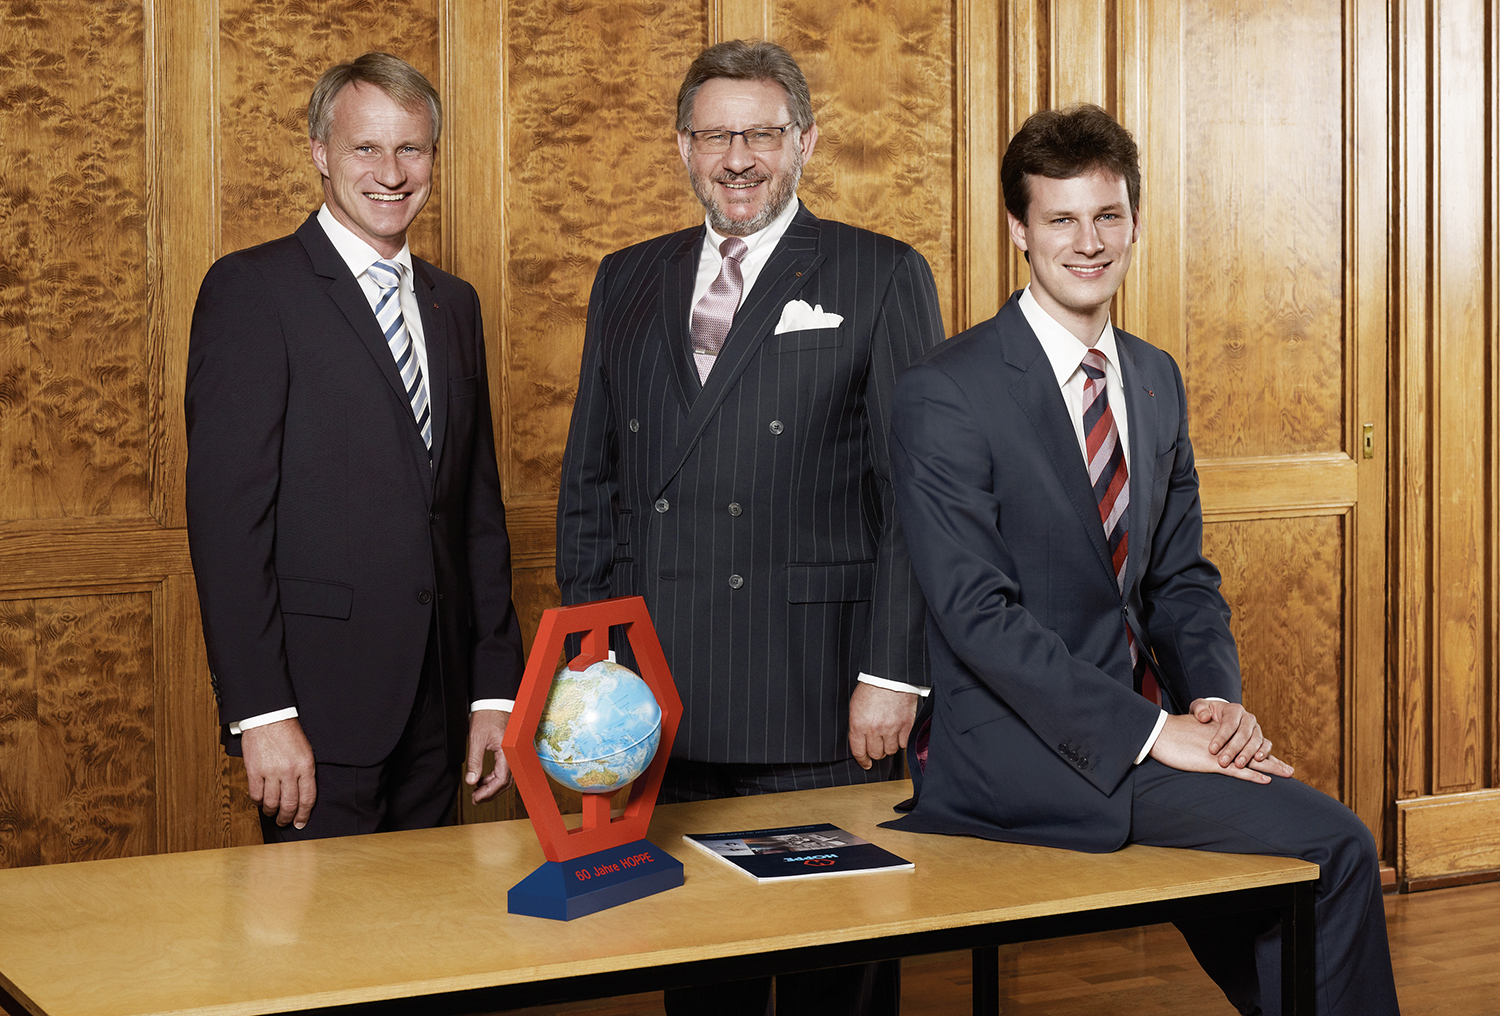 The entrepreneurs: Christoph Hoppe, Wolf Hoppe and Christian Hoppe